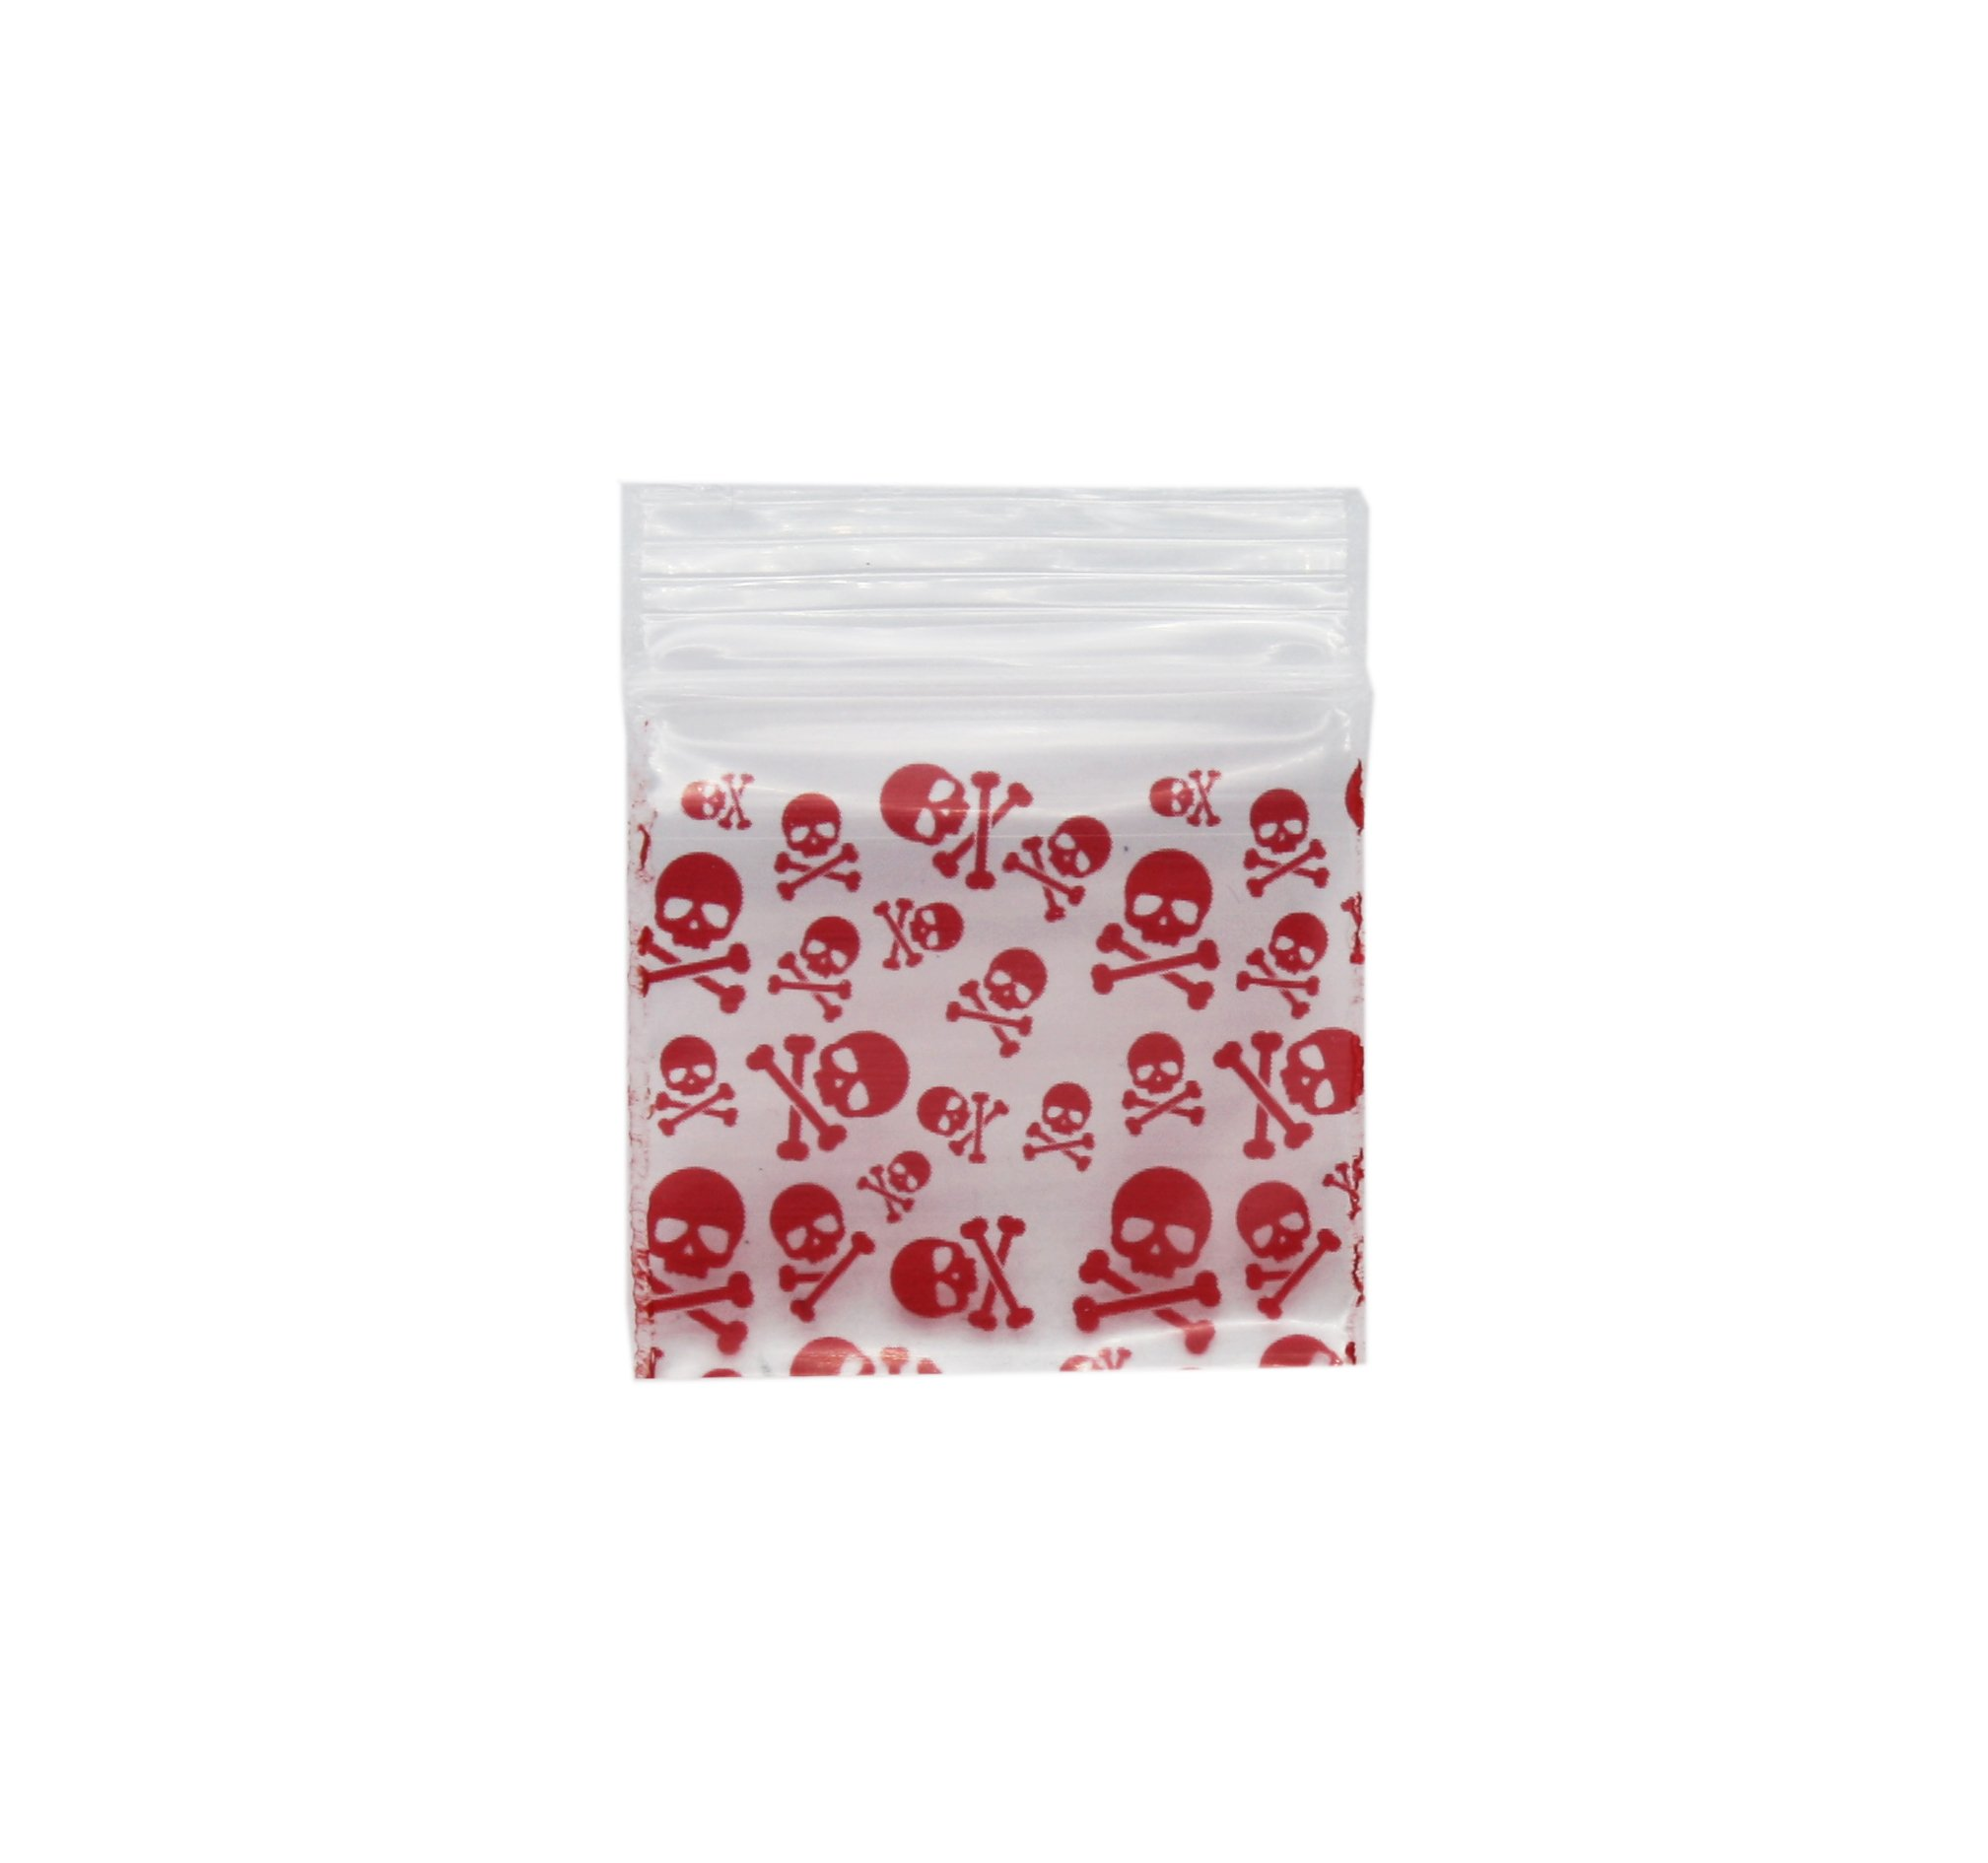 Red Skull Bag 32mm x 32mm